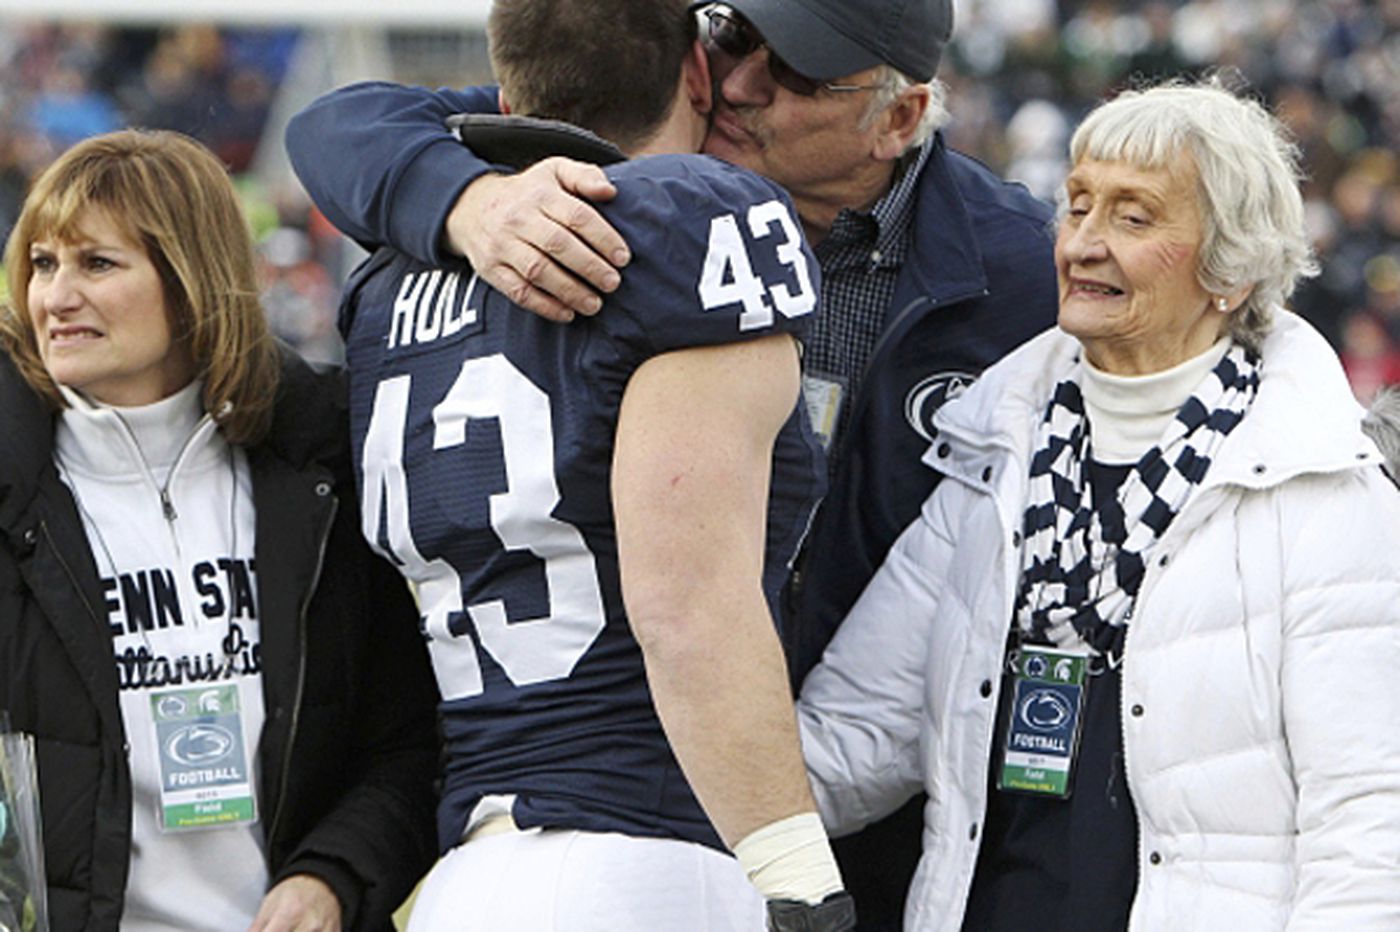 Senior Mike Hull savors final days at Penn State